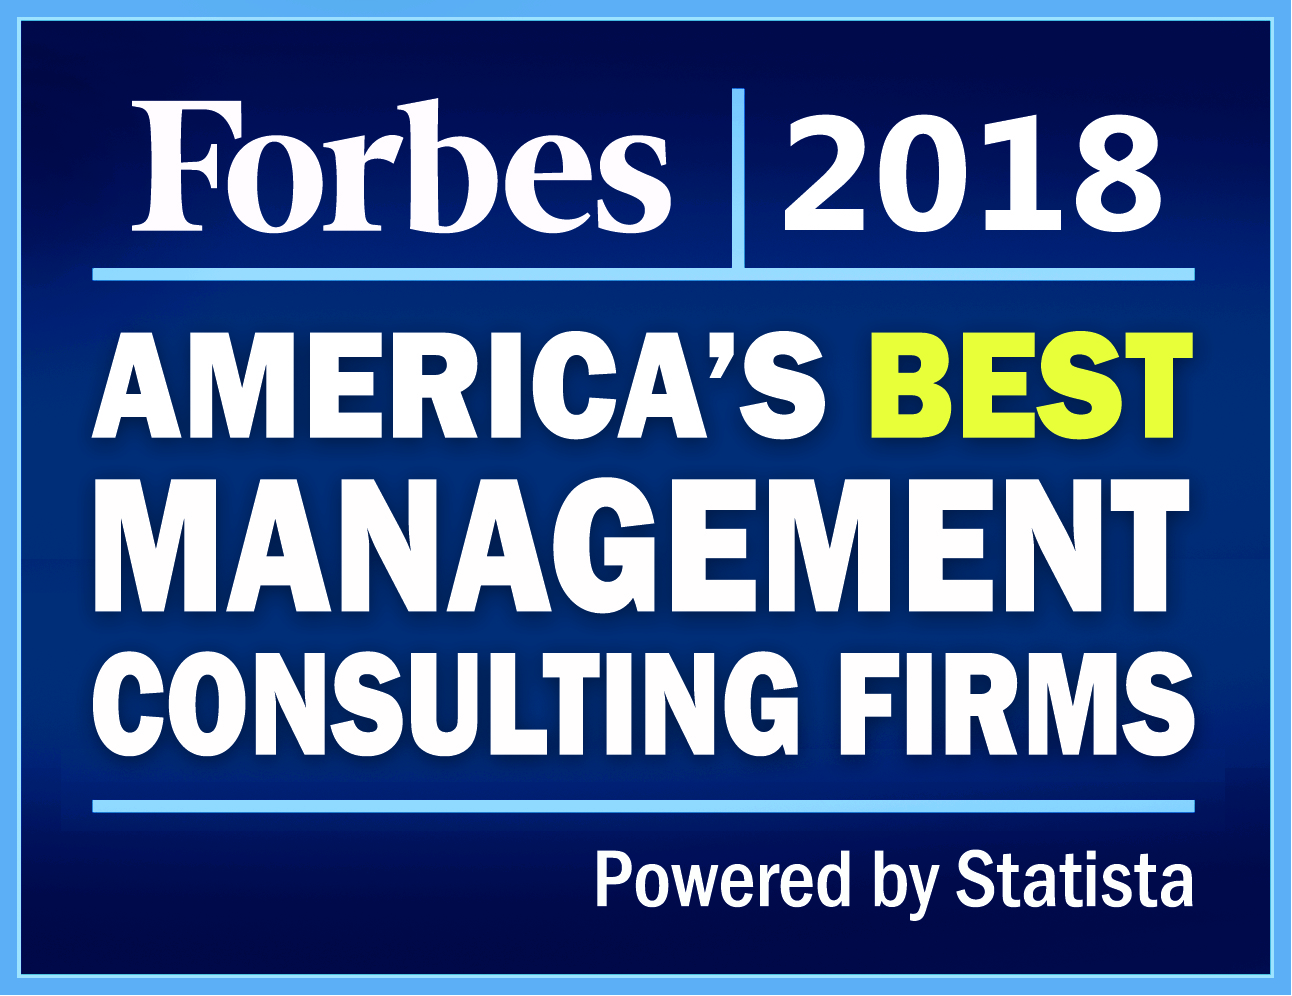 Hat-trick for RSC as one of 'America's Best Management Consulting Firms 2018'